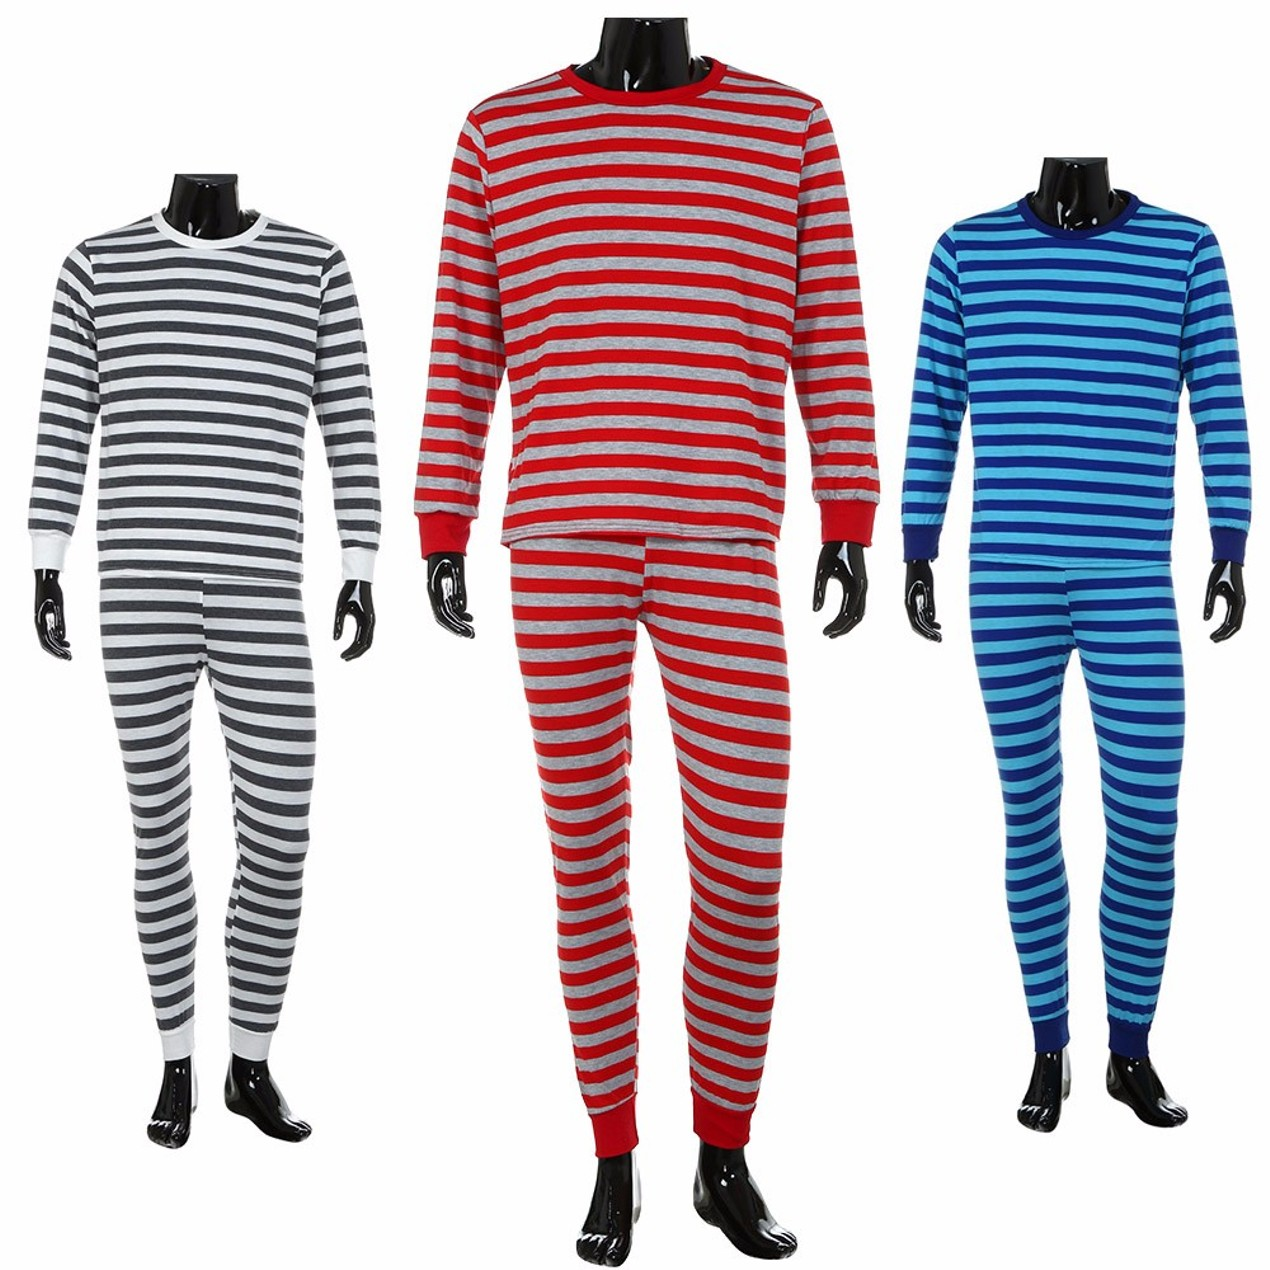 mens family matching christmas pajamas set striped blouse pants